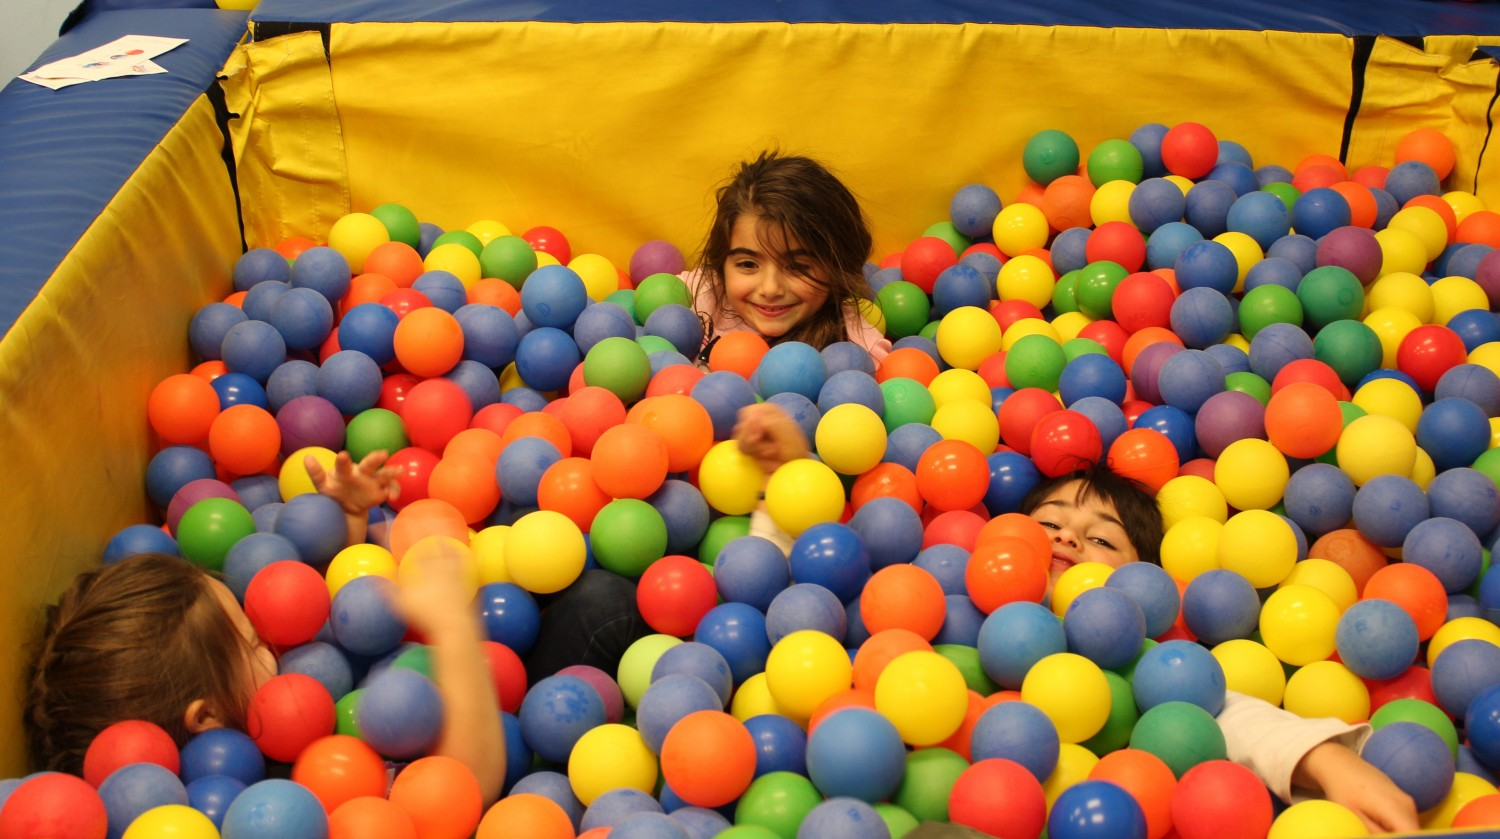 18 Balls And 15 Ball Playing Activities For Children With